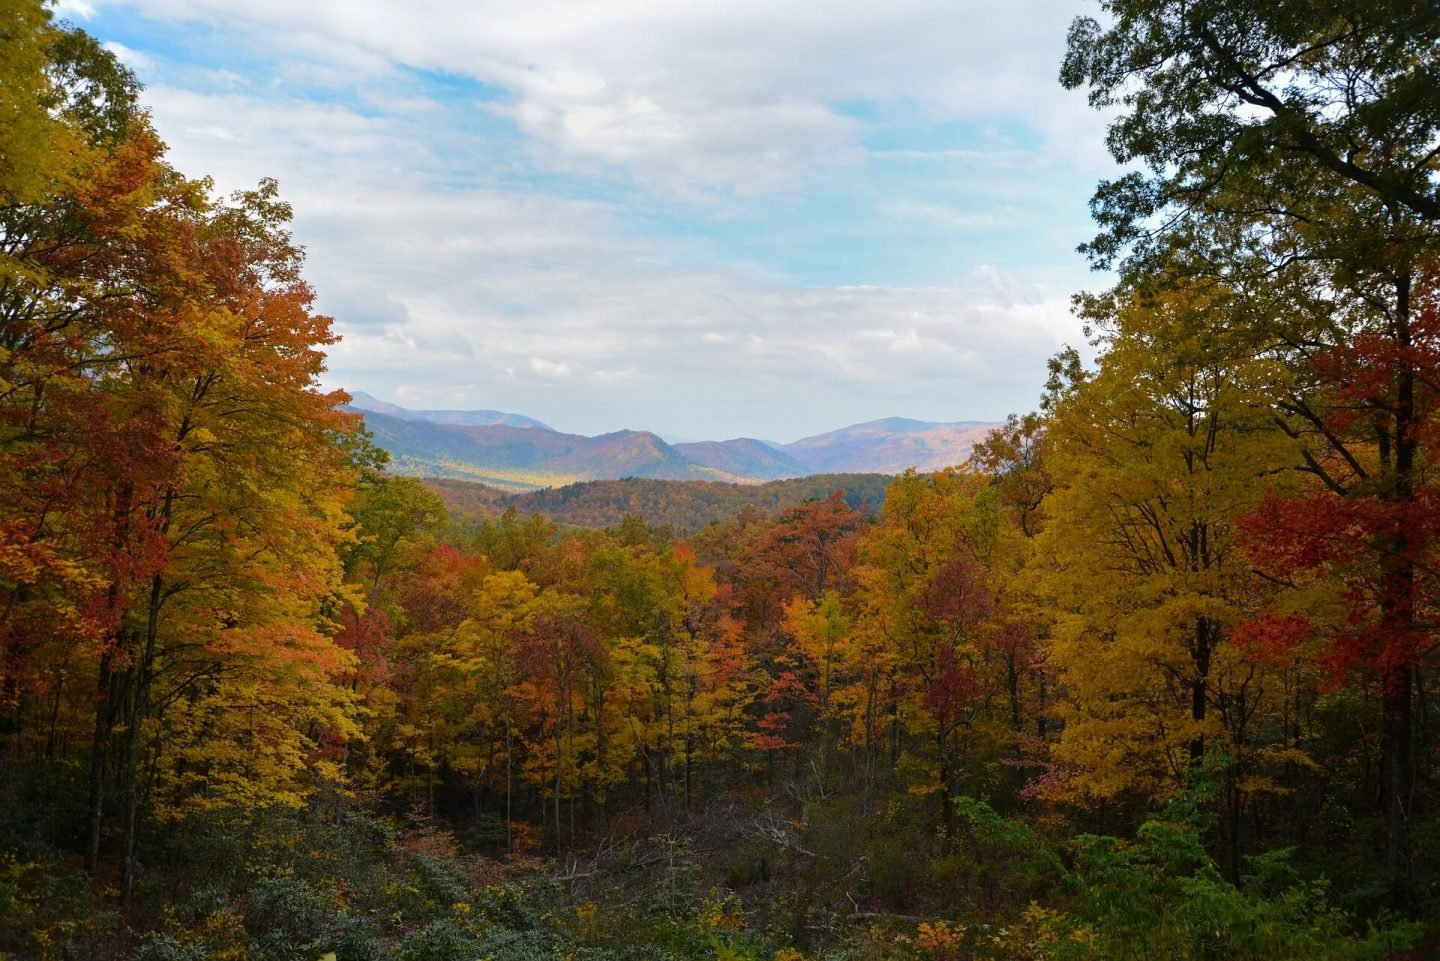 Geography trivia questions and answers - Smokey Mountain Appalachians